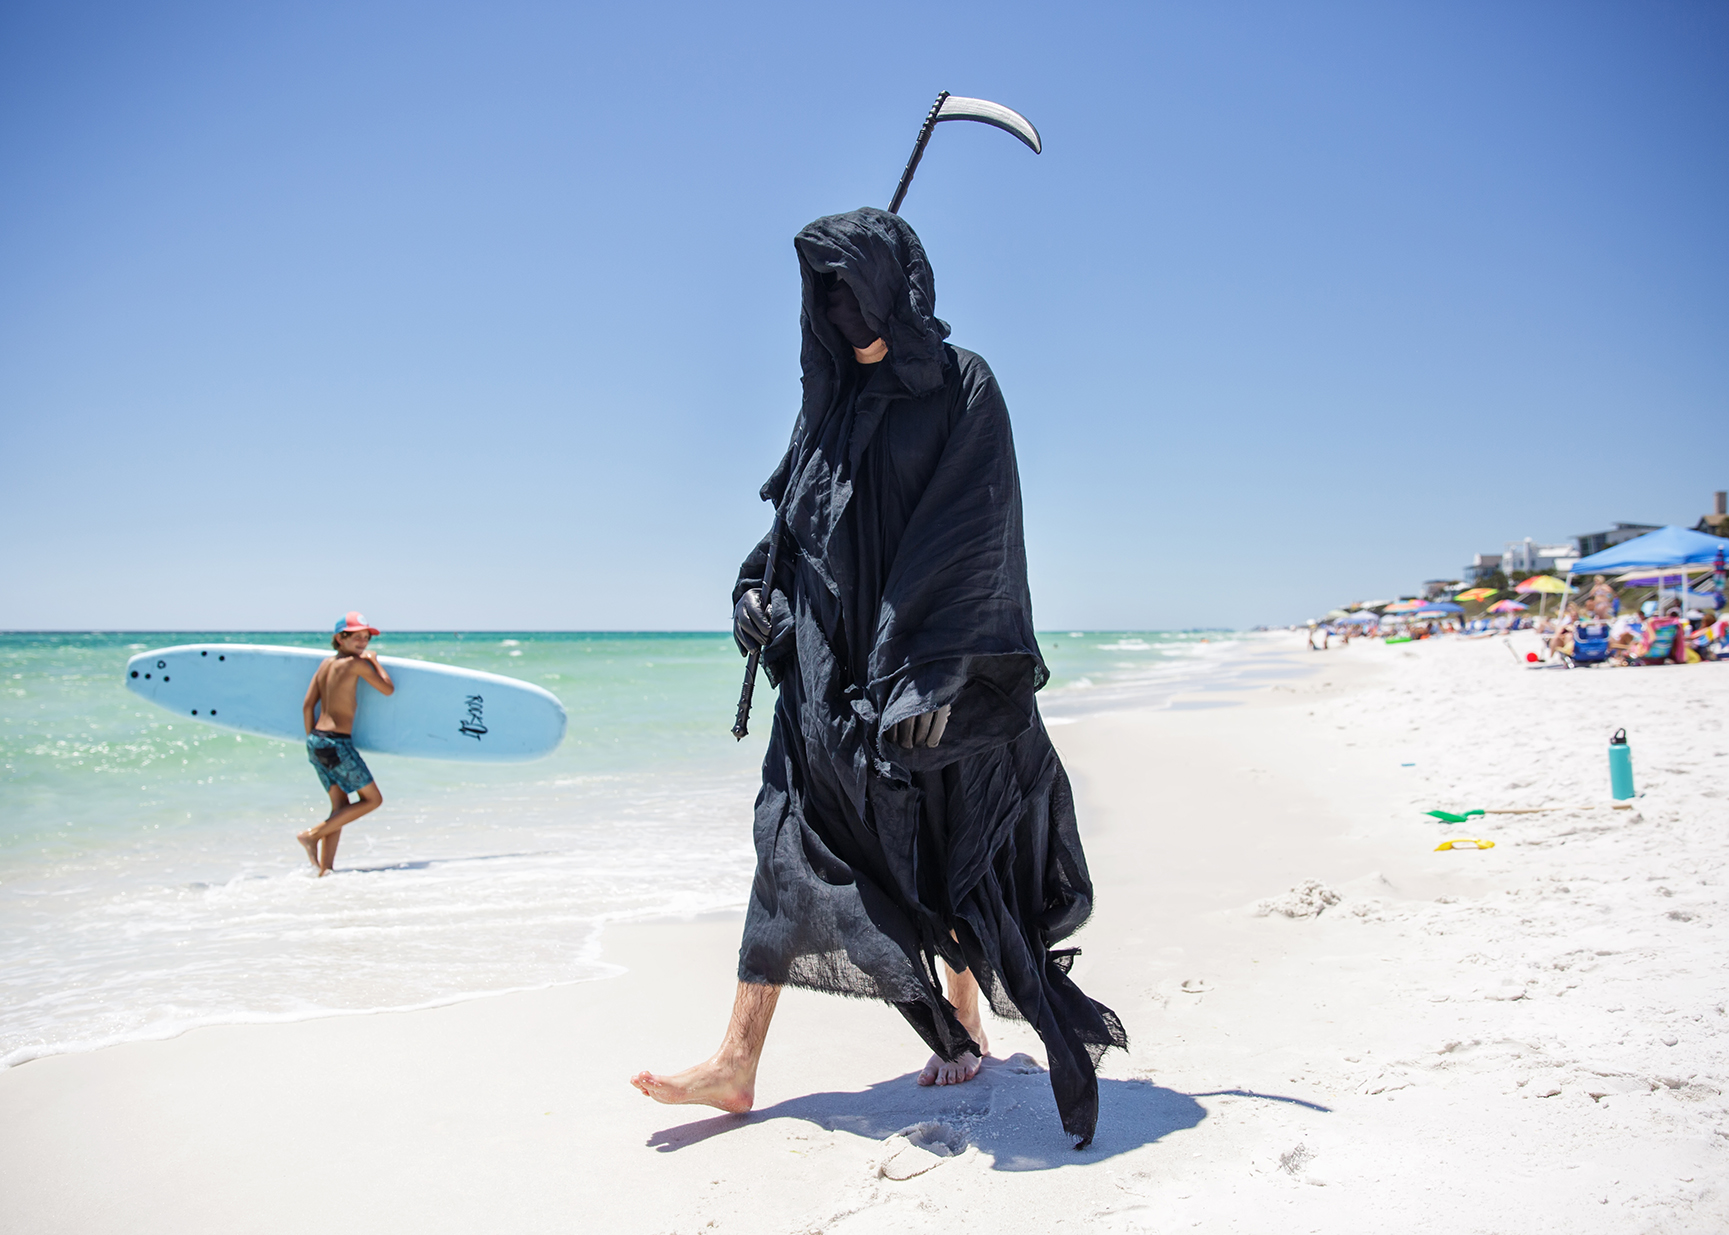 'I'm Patrolling Florida's Overflowing Beaches As the Grim Reaper'